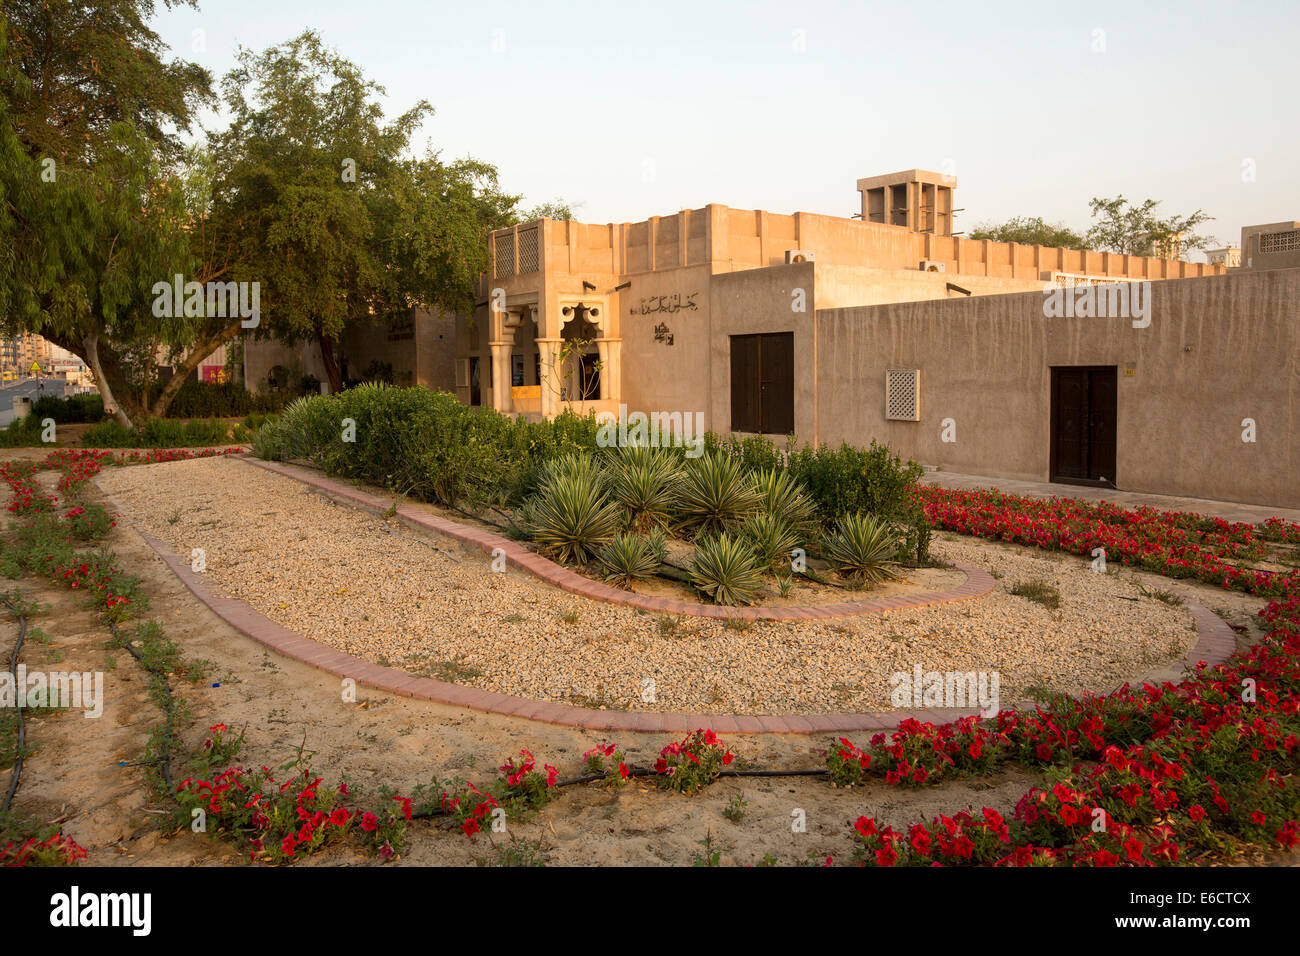 Garden with vivid red flowers, succulents and shading tree and exterior of Arabic restaurant in historic old sector - Stock Image